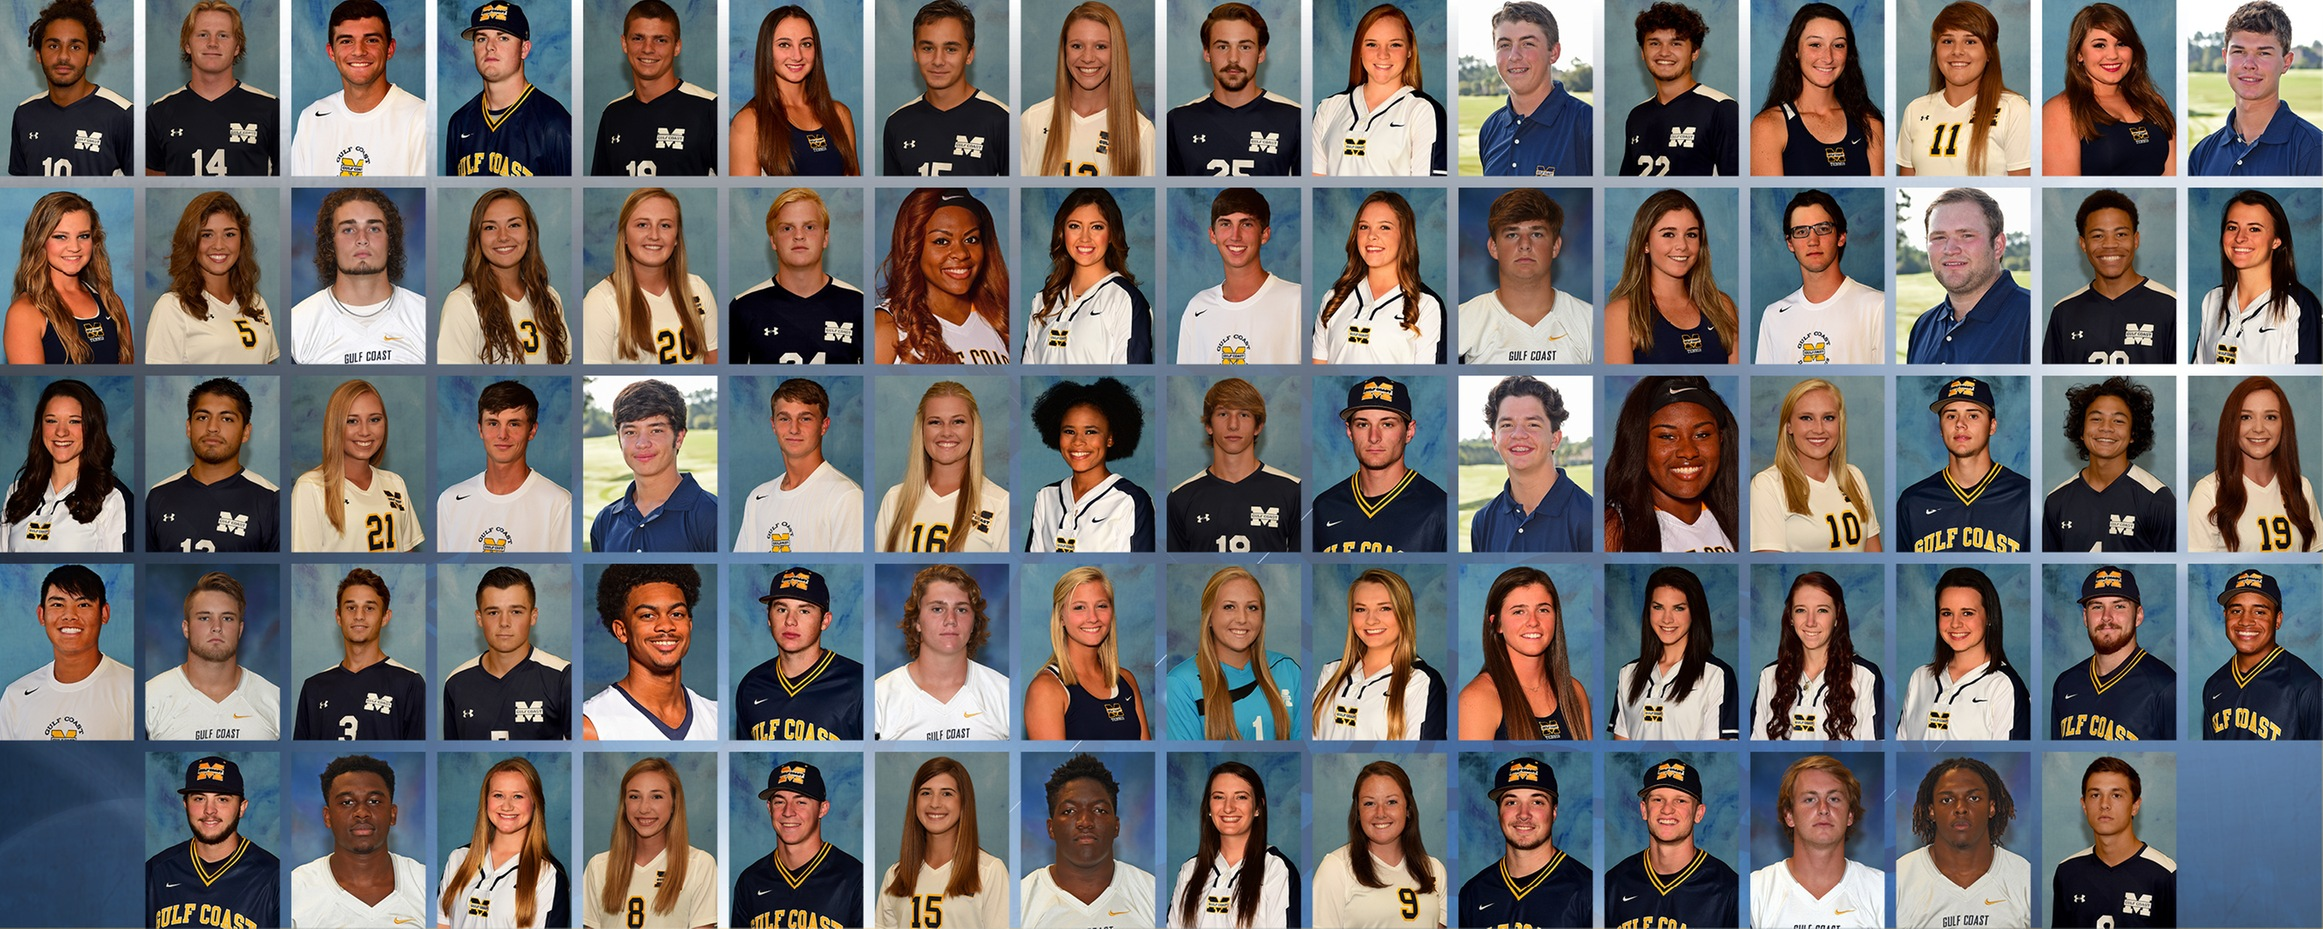 78 MGCCC student-athletes earn MACJC academic awards